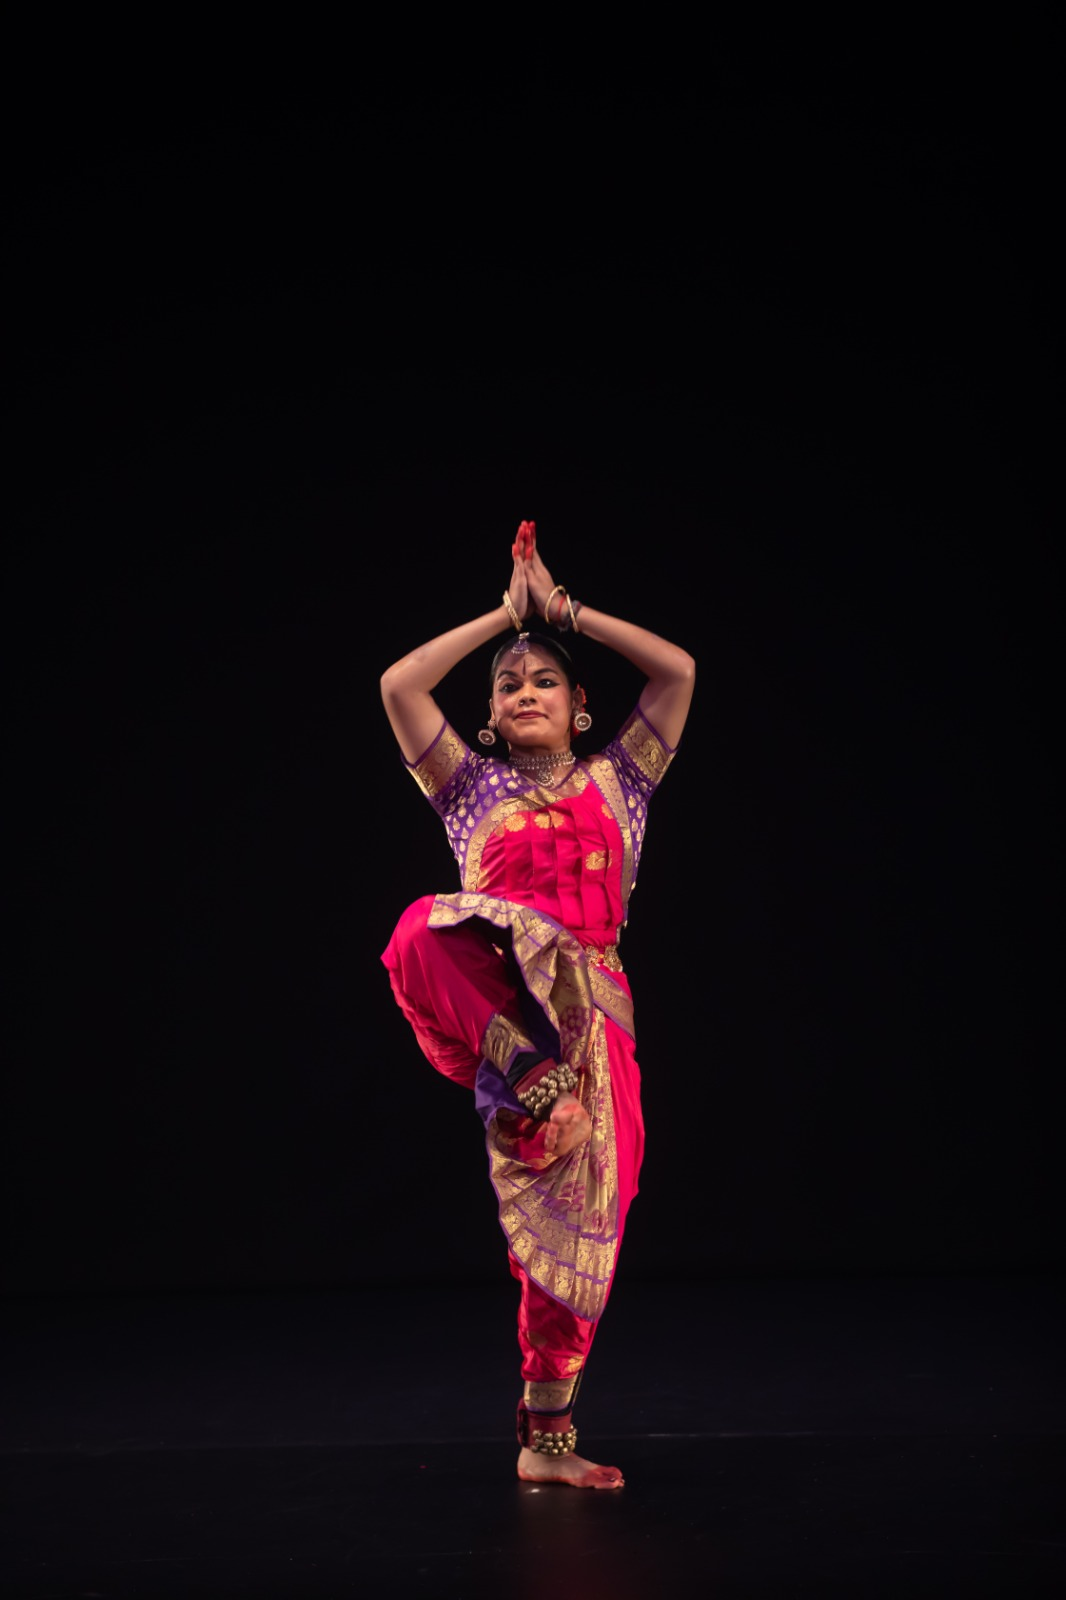 Periyachi Roshini started learning bharatanatyam from age five and is currently at LASALLE College of the Arts undertaking her Diploma in Performance. Photo courtesy: Esplanade